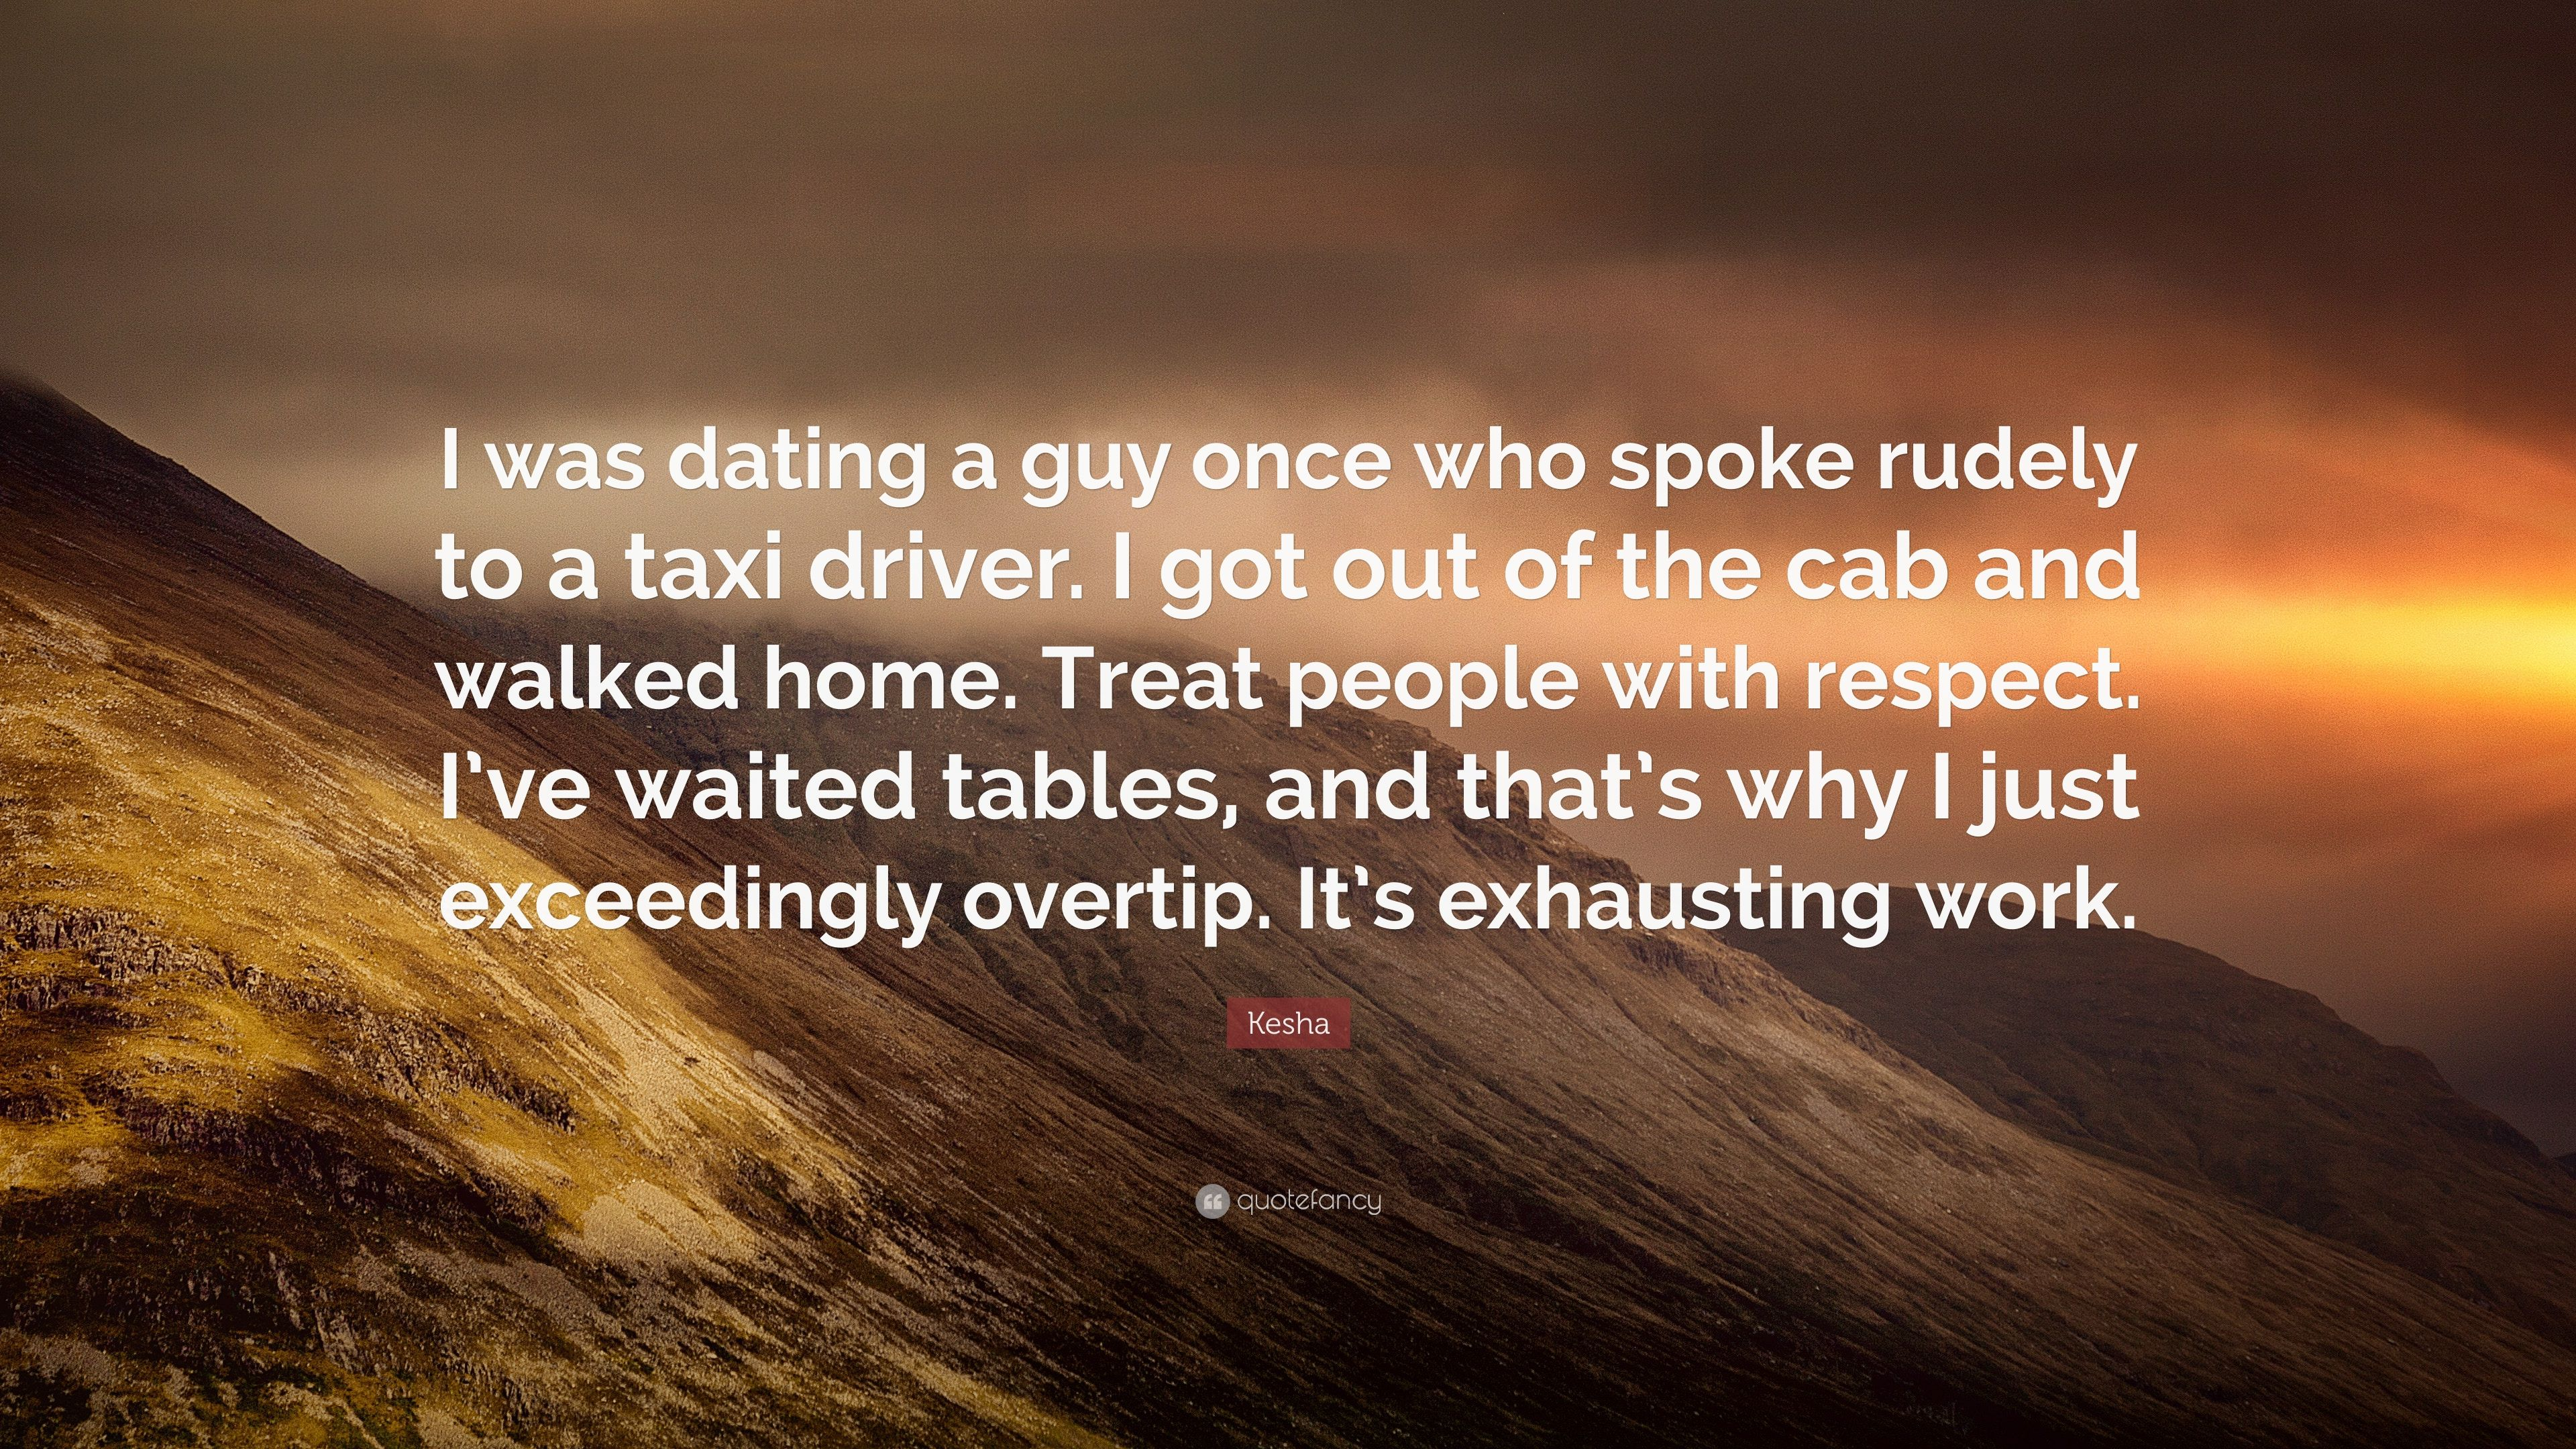 dating a guy quotes